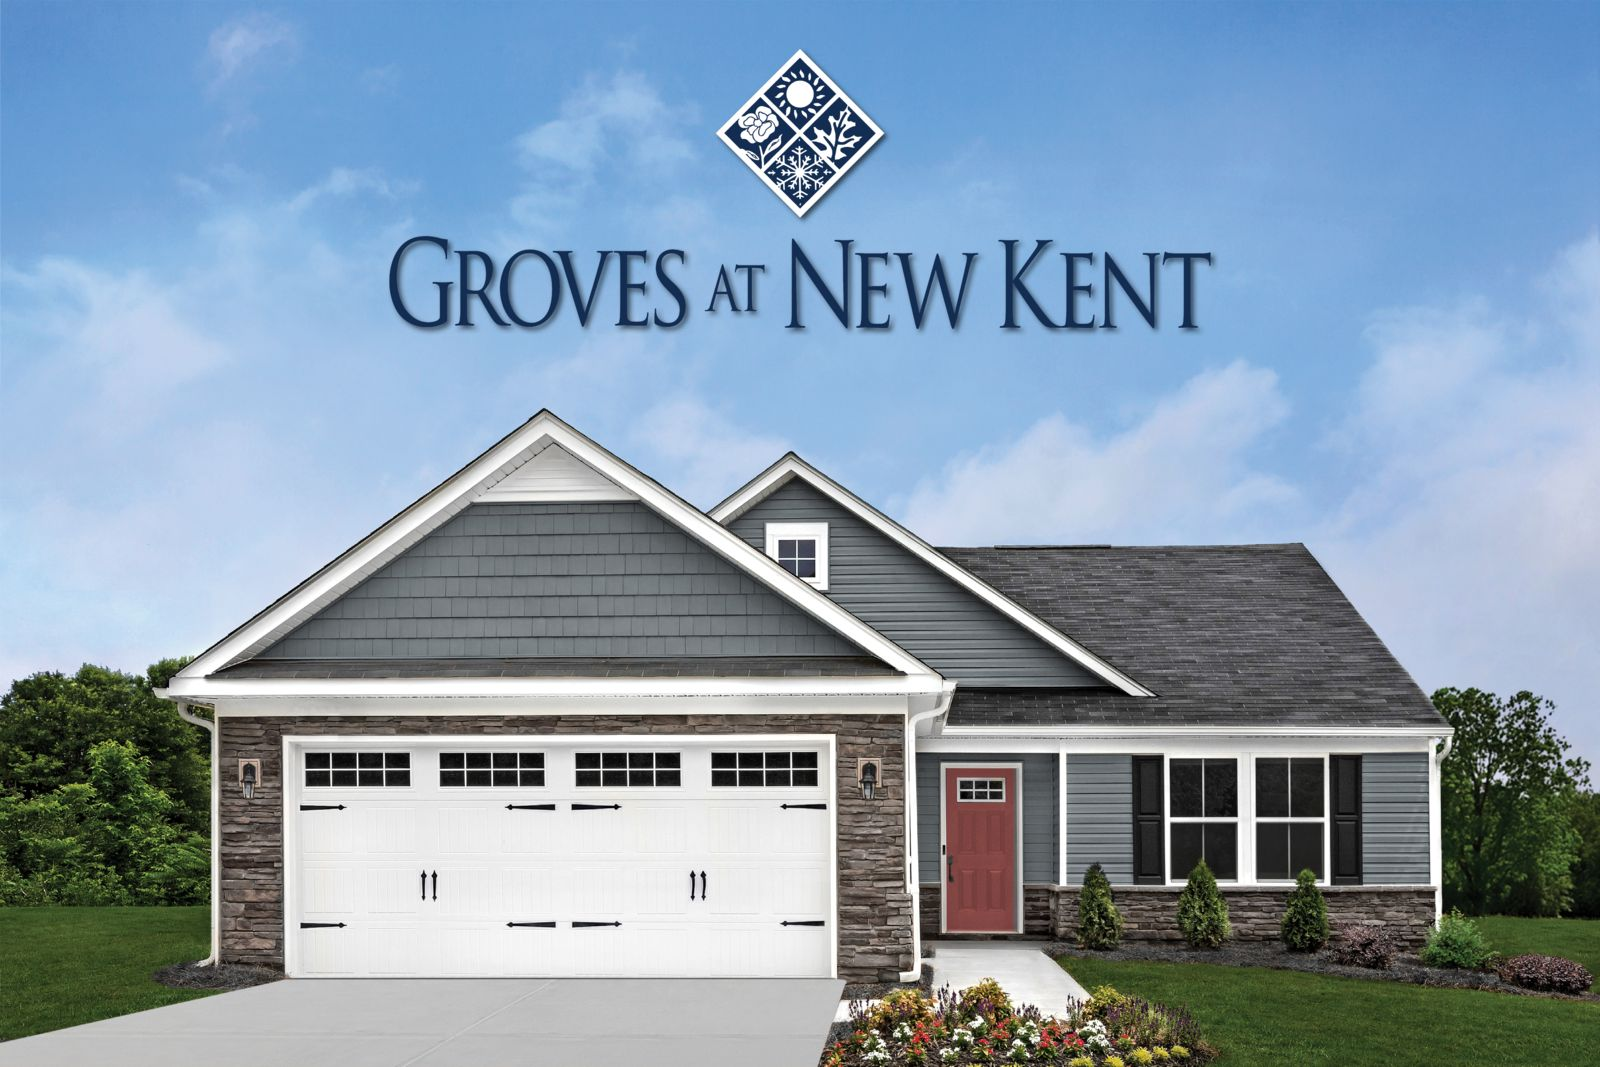 Starting your forever, today:Introducing our new active adult community; 1-story homes w/ no yard work & top-of-the-line amenities. Located in beautiful New Kent w/ quick access to Richmond & Williamsburg.Click here to be a VIP.